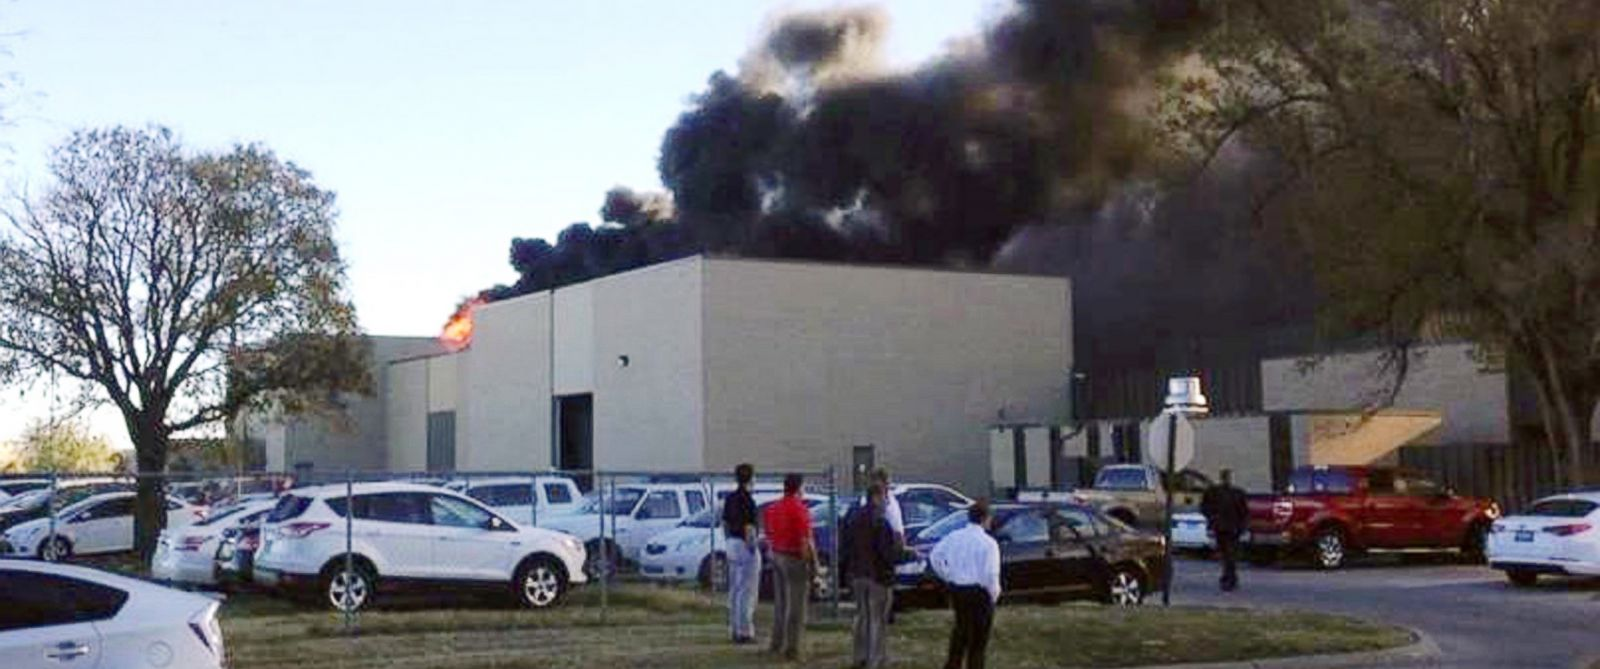 PHOTO:In the image from video provided by KAKE News, black smoke billows from a building at Mid-Continent Airport where officials say a plane crashed, Oct. 30, 2014, in Wichita, Kan.